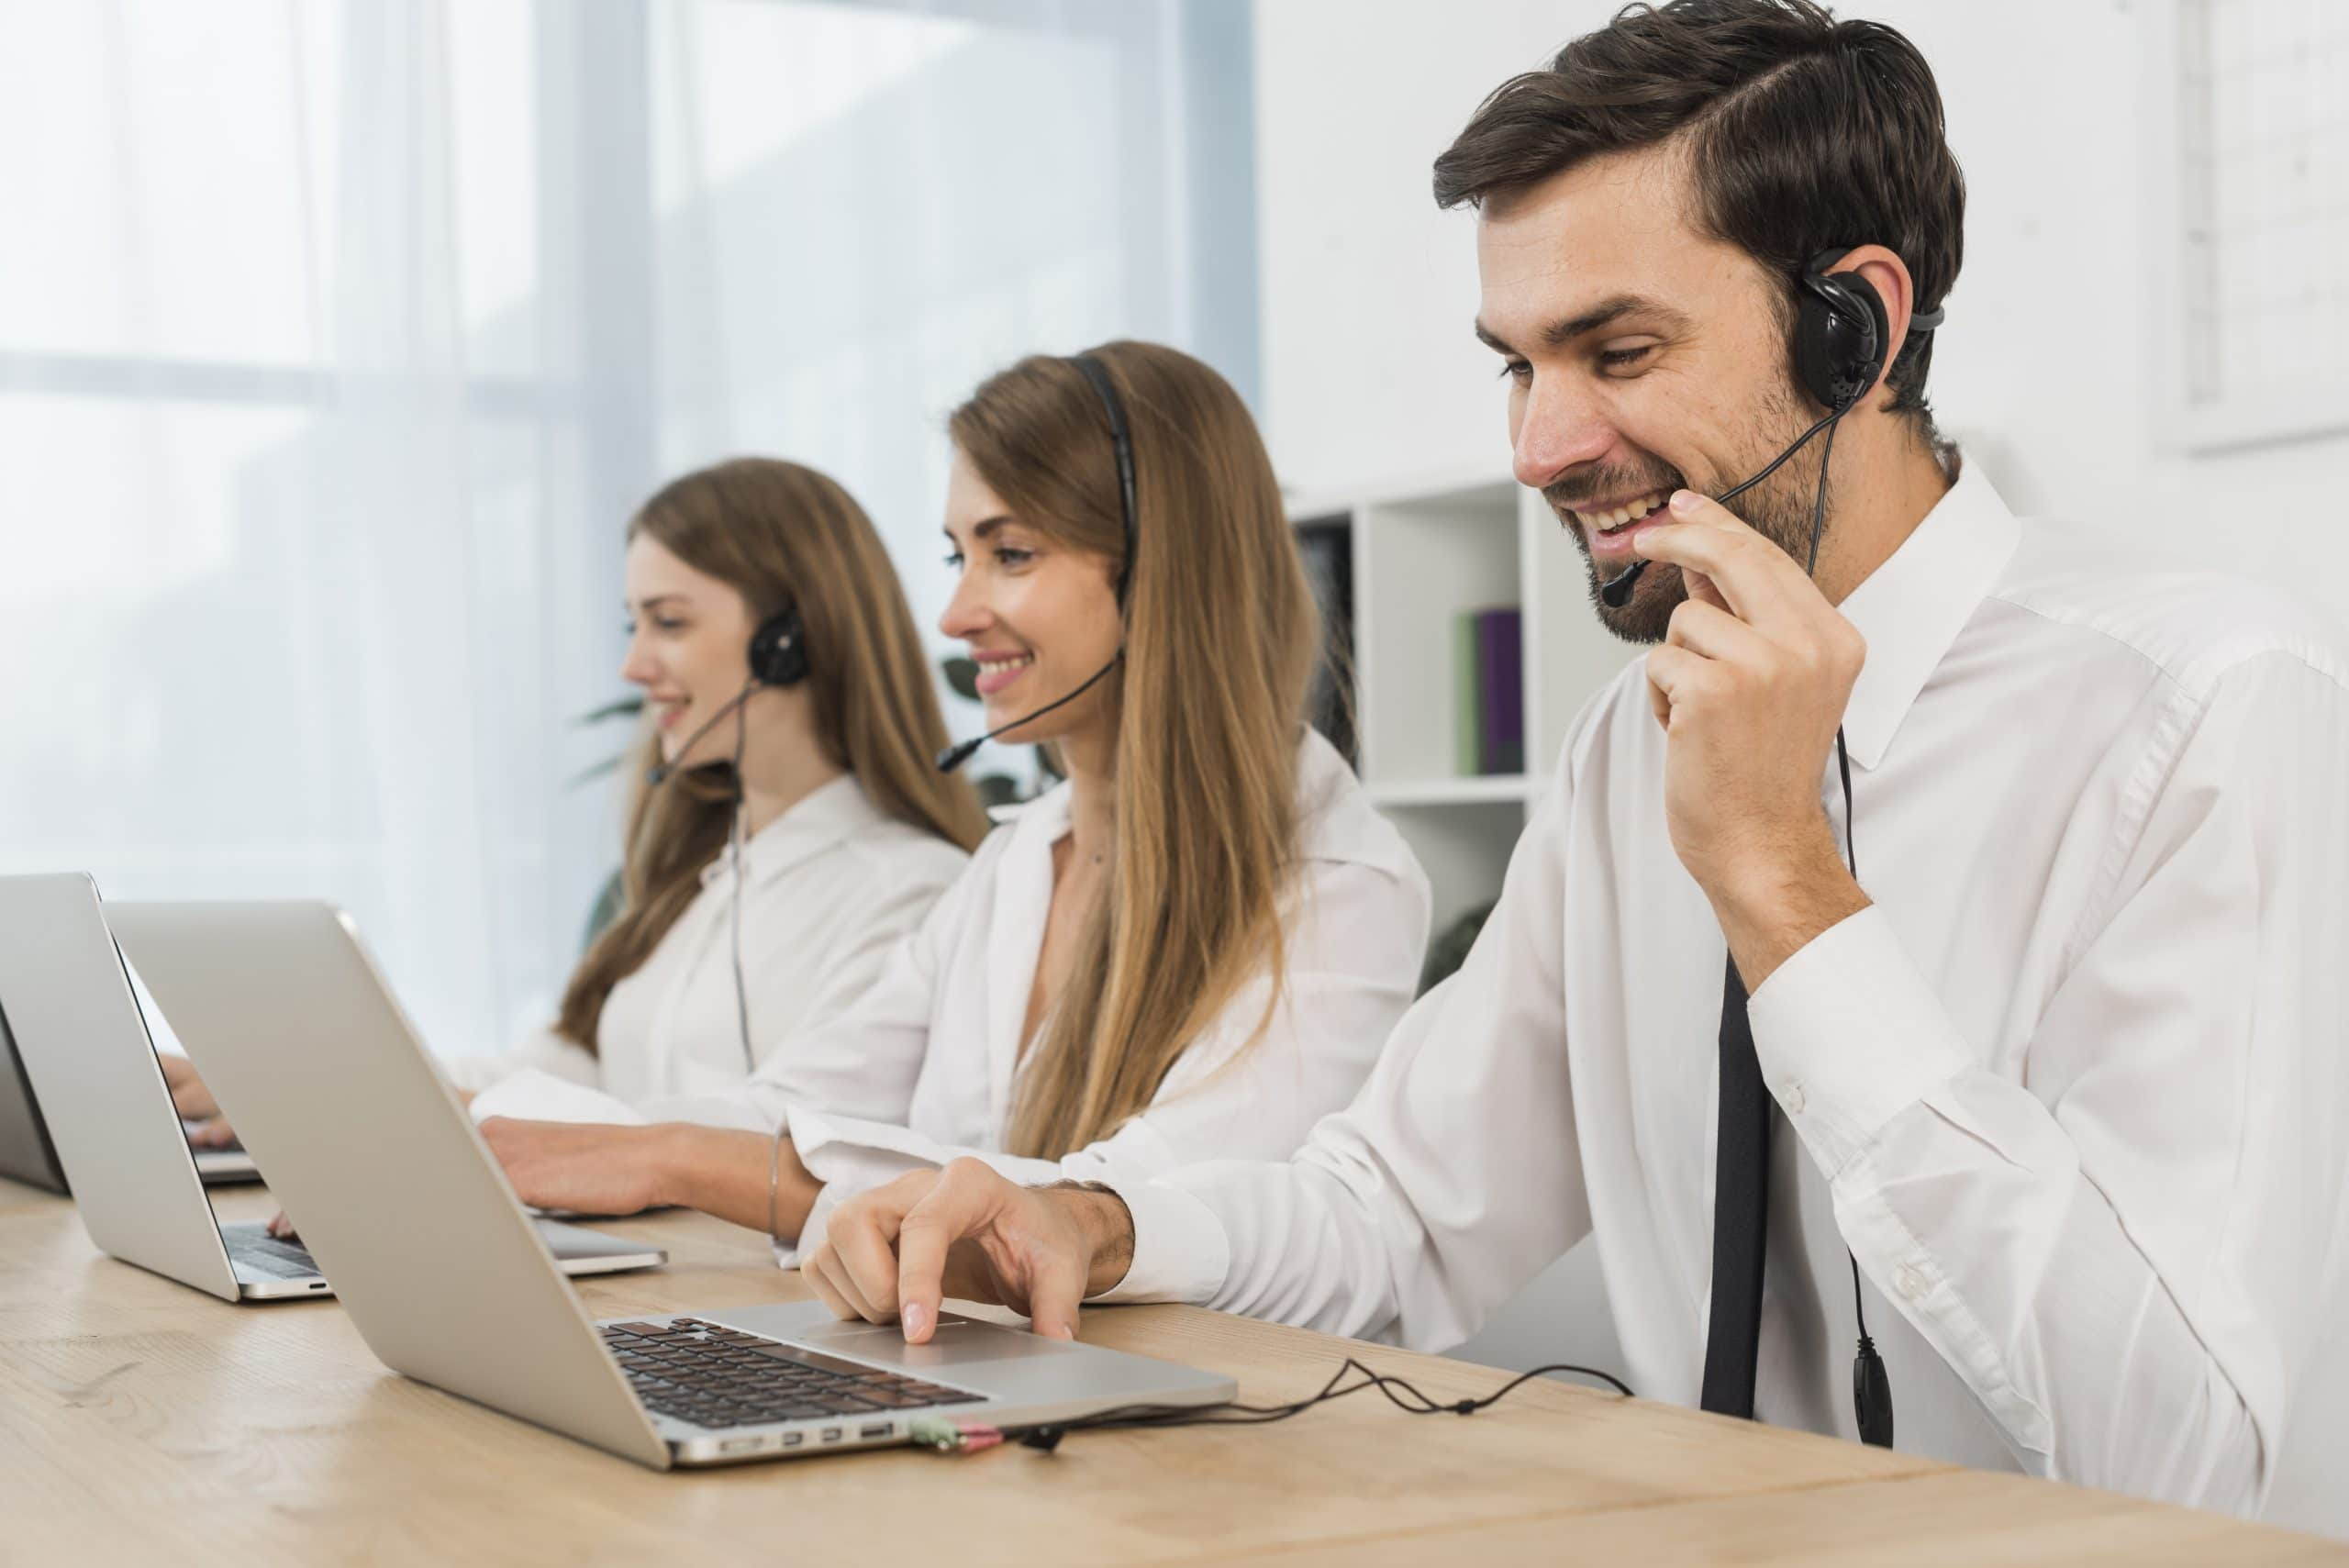 Live chat support agents. Customer service outsourcing